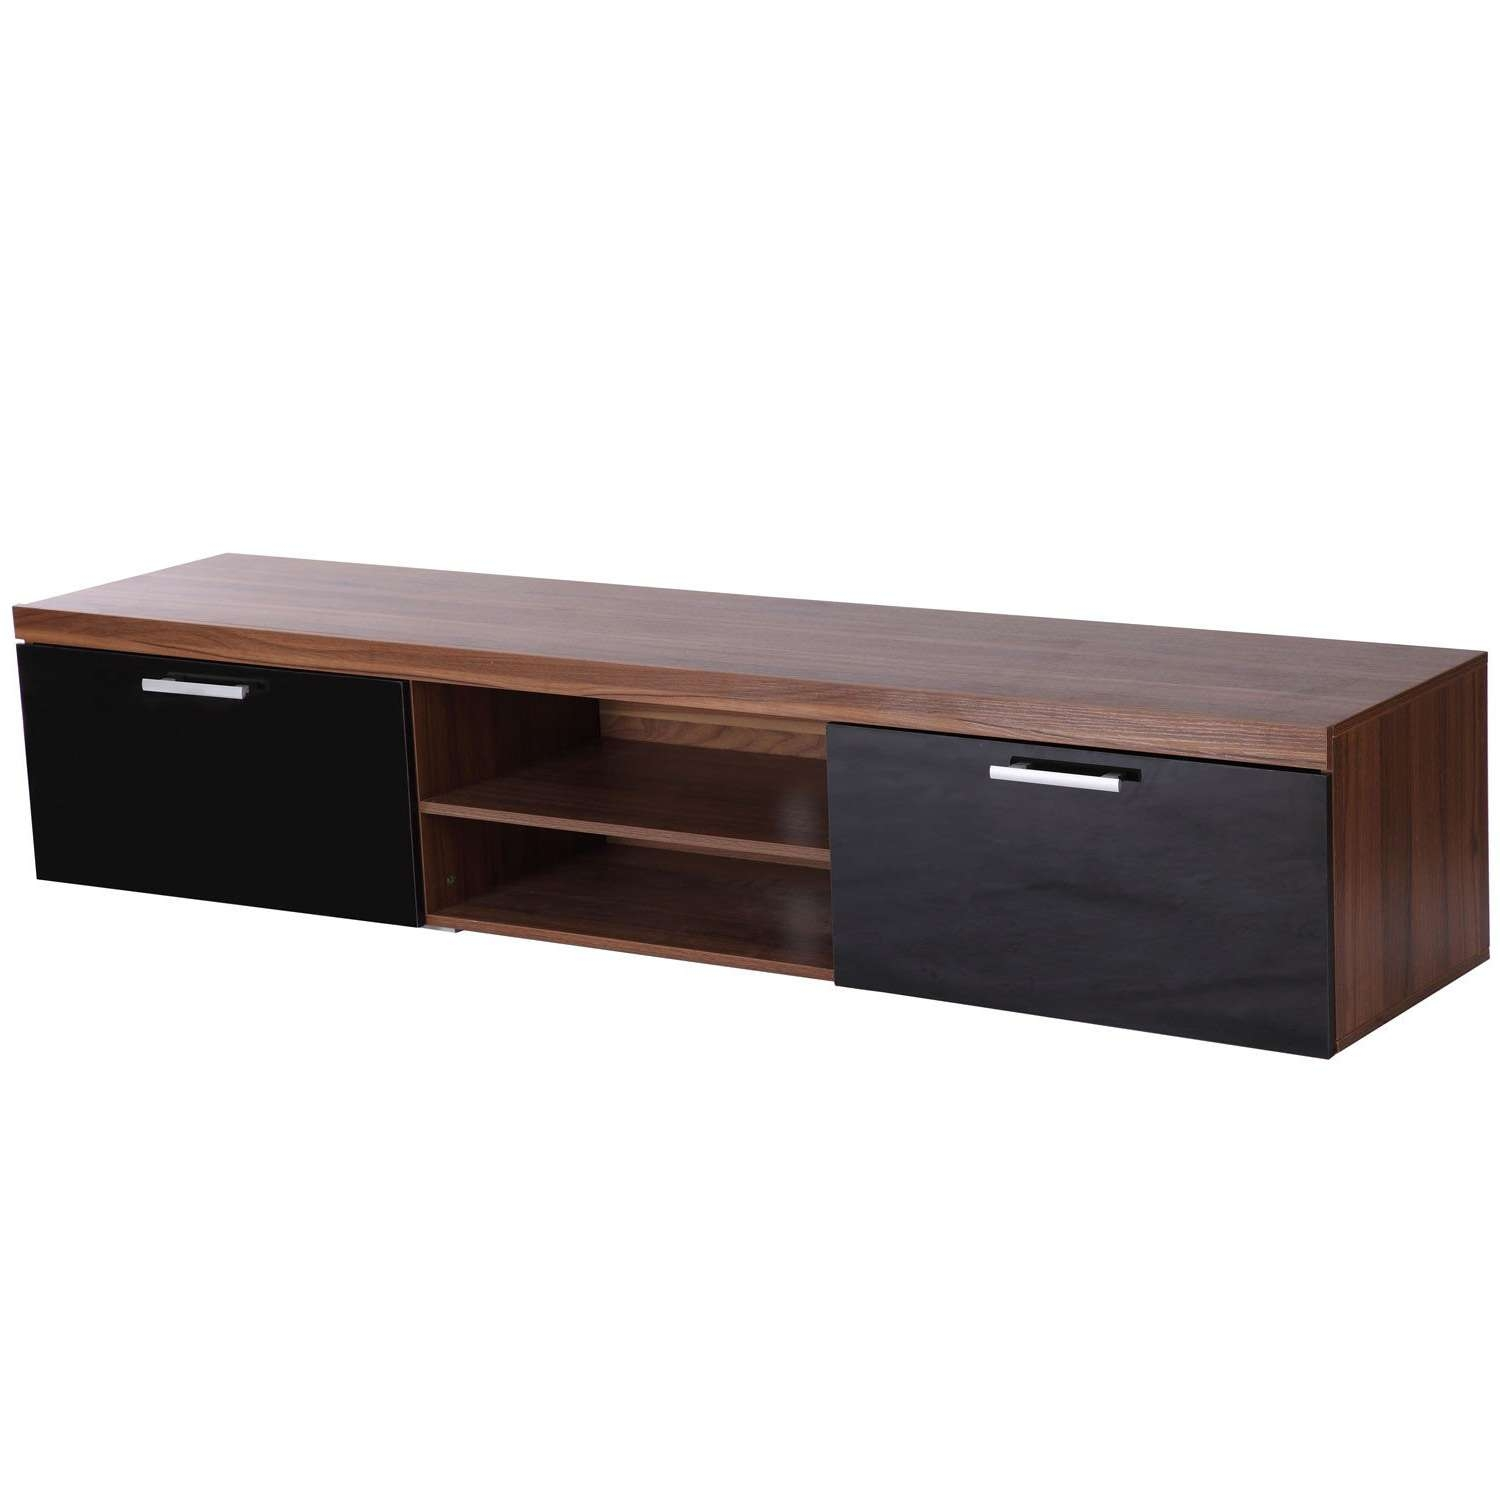 Tv Cabinet Unit, 2 High Gloss Doors Black/walnut Pertaining To Black Tv Cabinets With Doors (View 17 of 20)